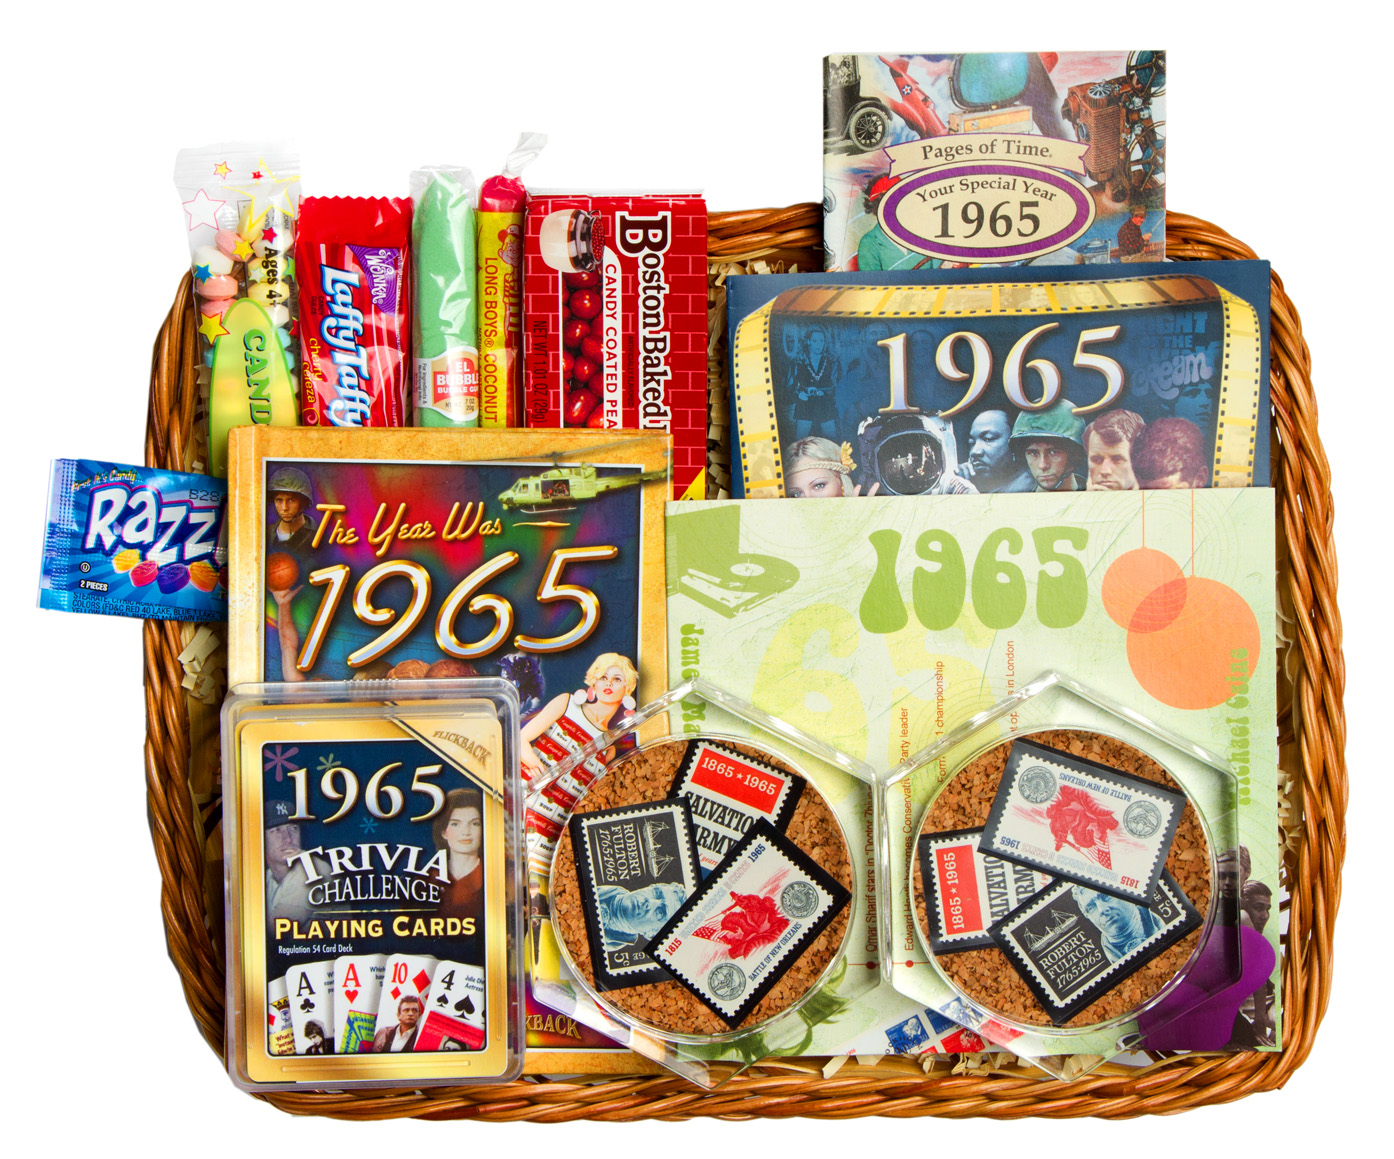 Wedding anniversary gifts wedding anniversary gifts baskets for 50 th wedding anniversary gifts